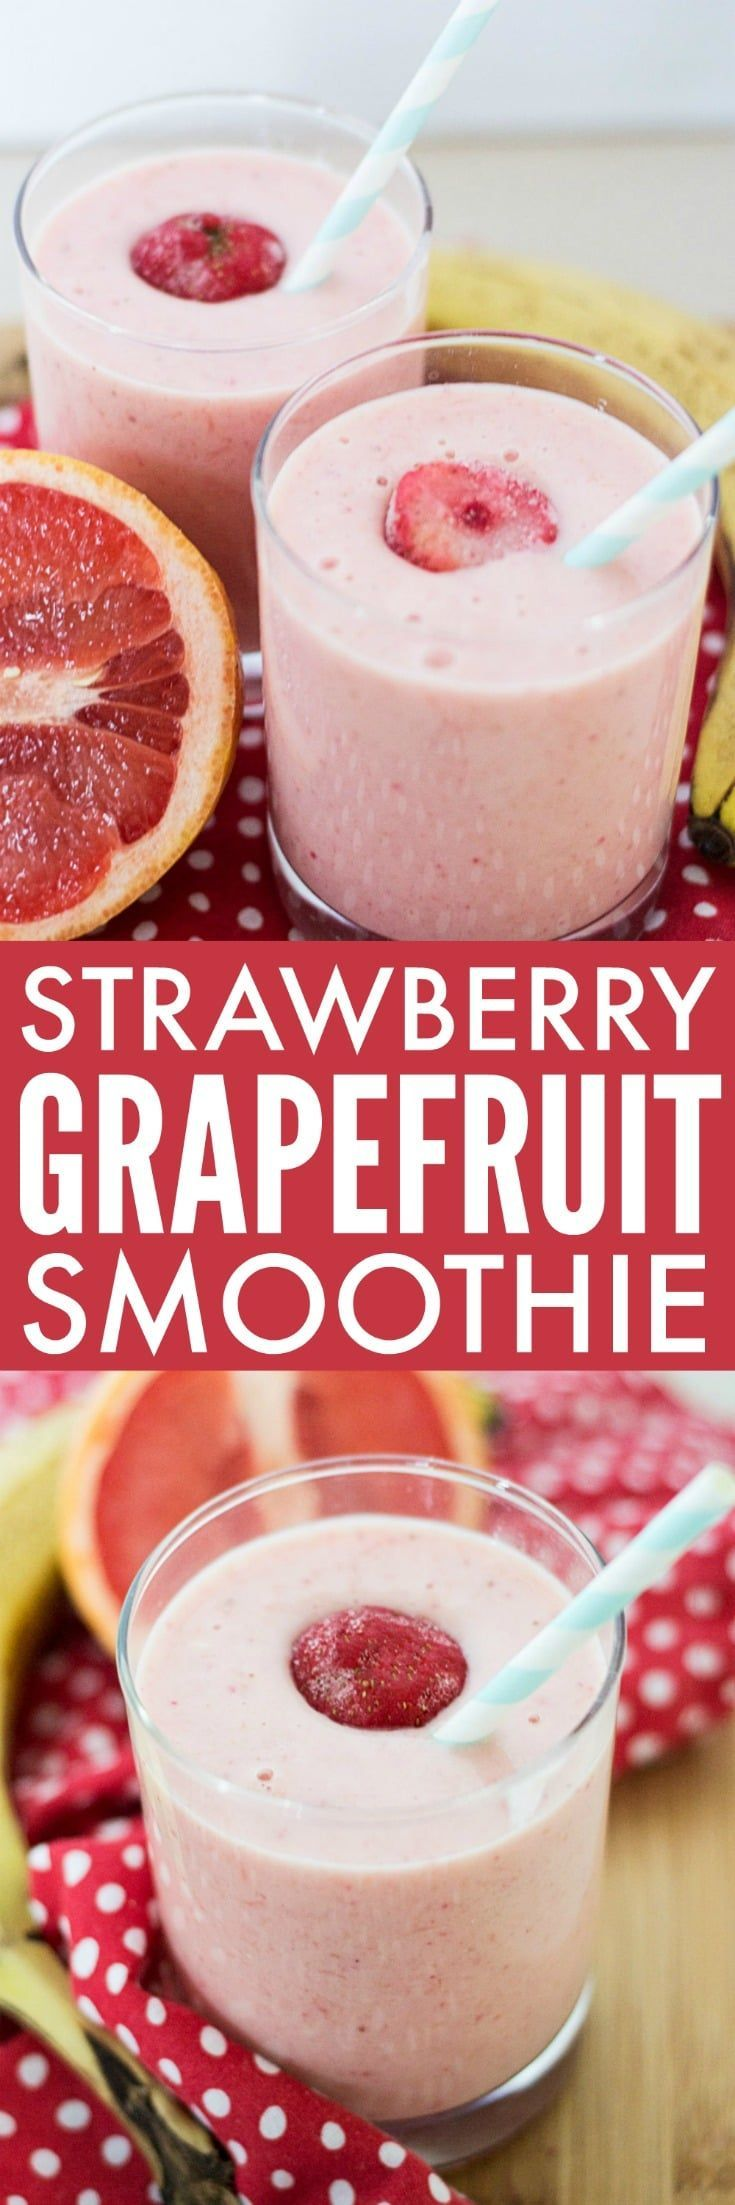 Our Strawberry Grapefruit Smoothie is both sweet and tart, making it a refreshing pick-me-up to start your morning.